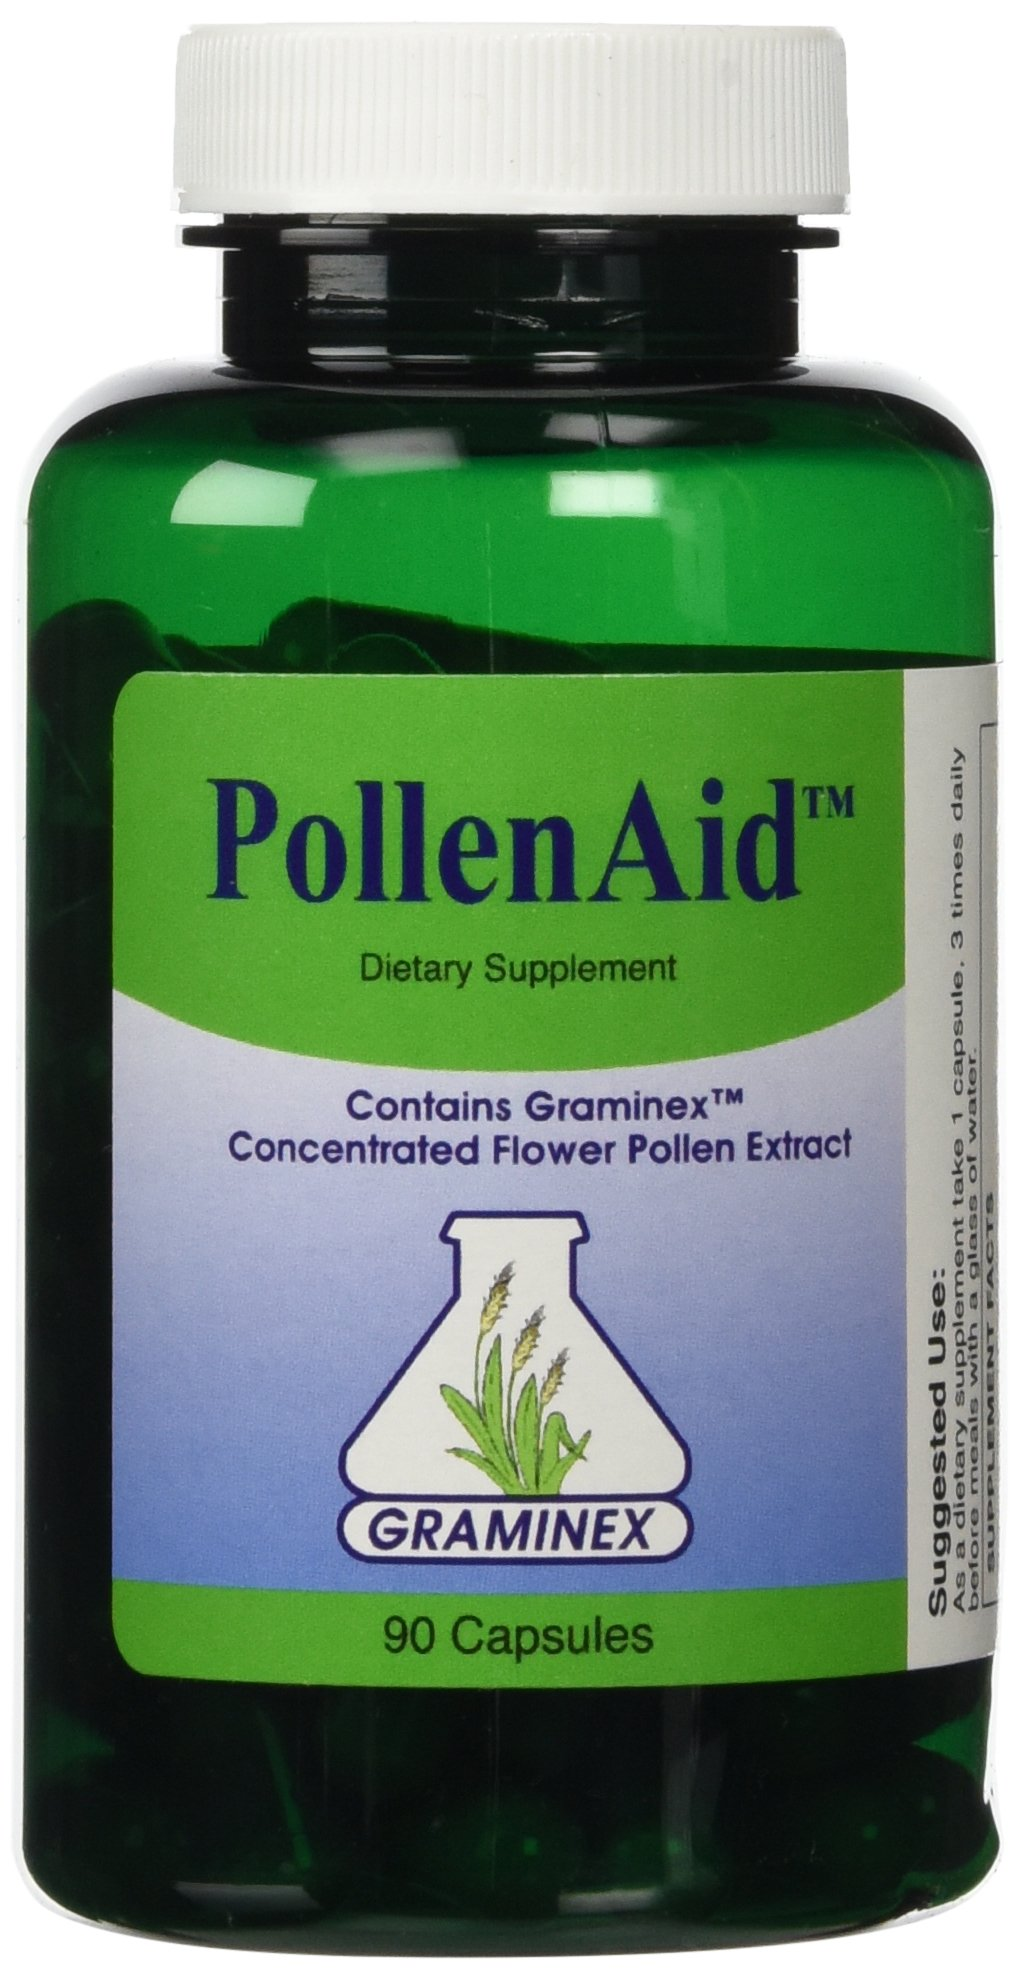 PollenAid Clinical Dosage of Graminex G63 Flower Pollen Extract - Full Spectrum Supplement for Prostate, Liver, Menopausal, and UTI Issues Among Others, 90 Capsules